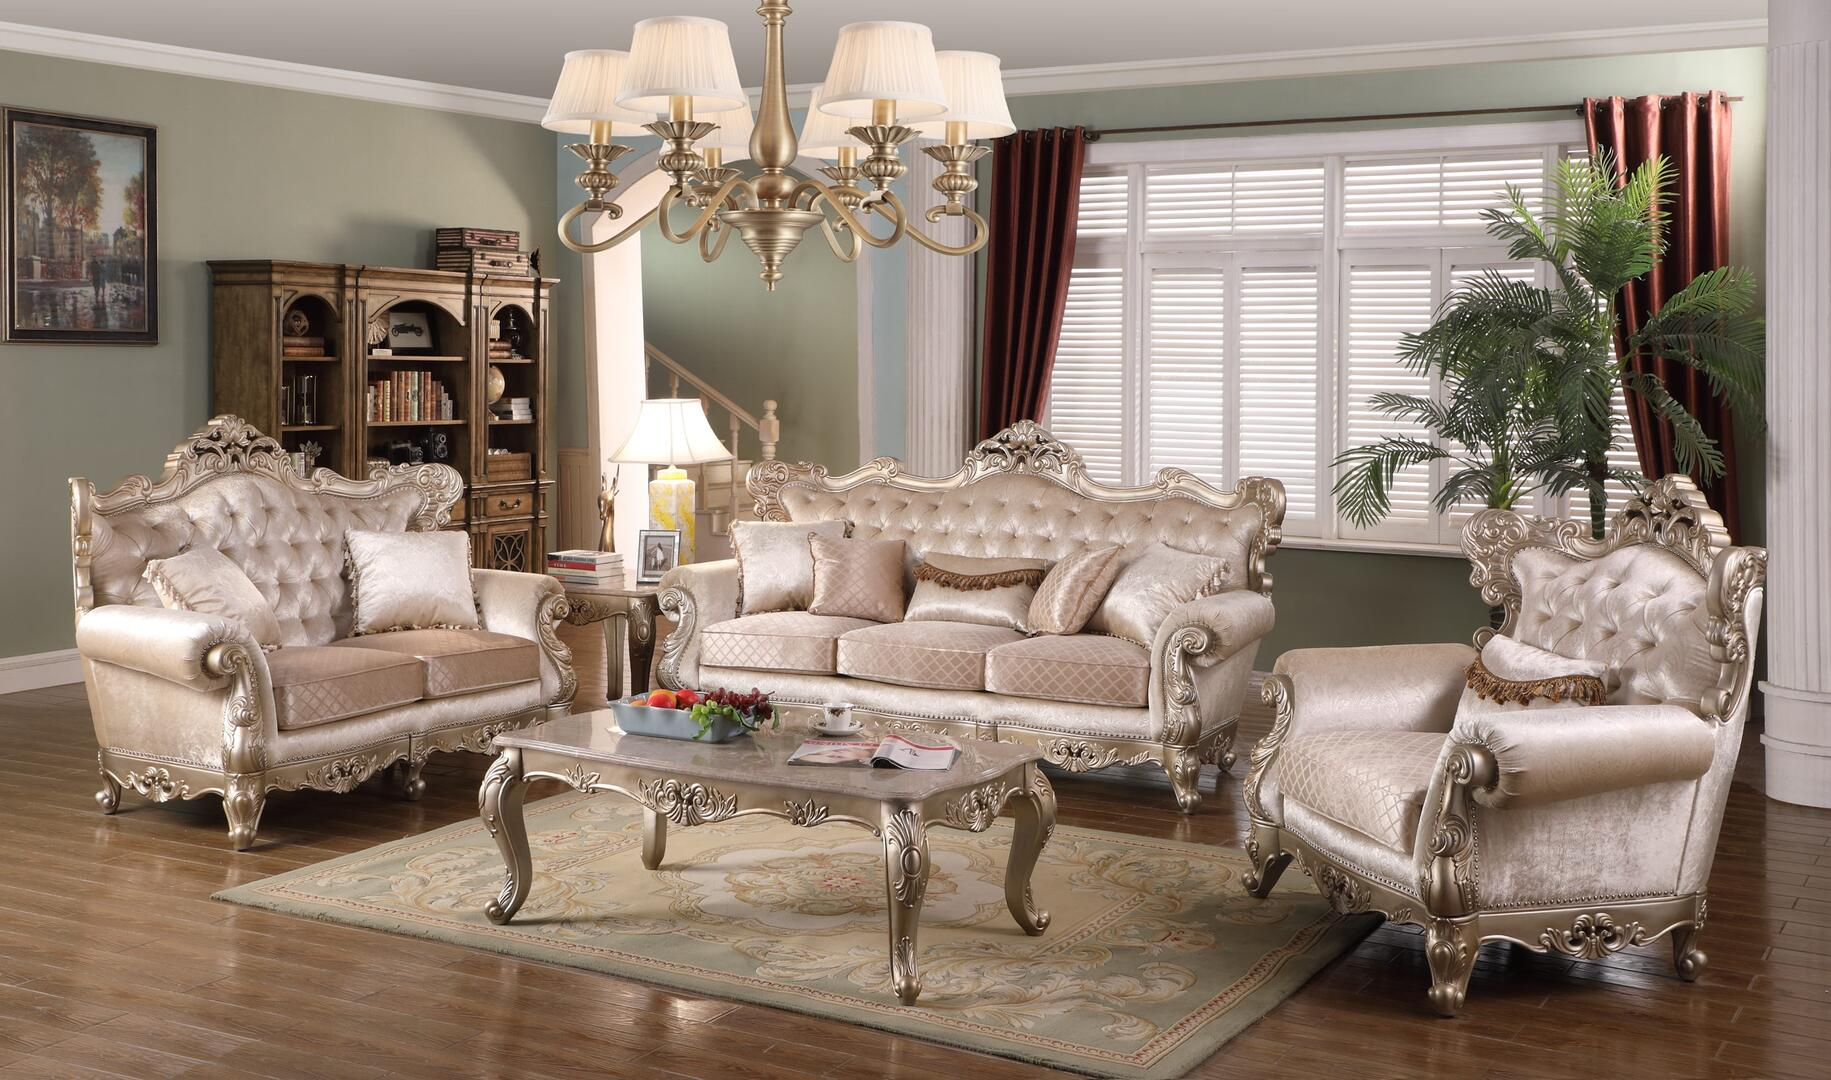 Cosmos Furniture Emily Collection